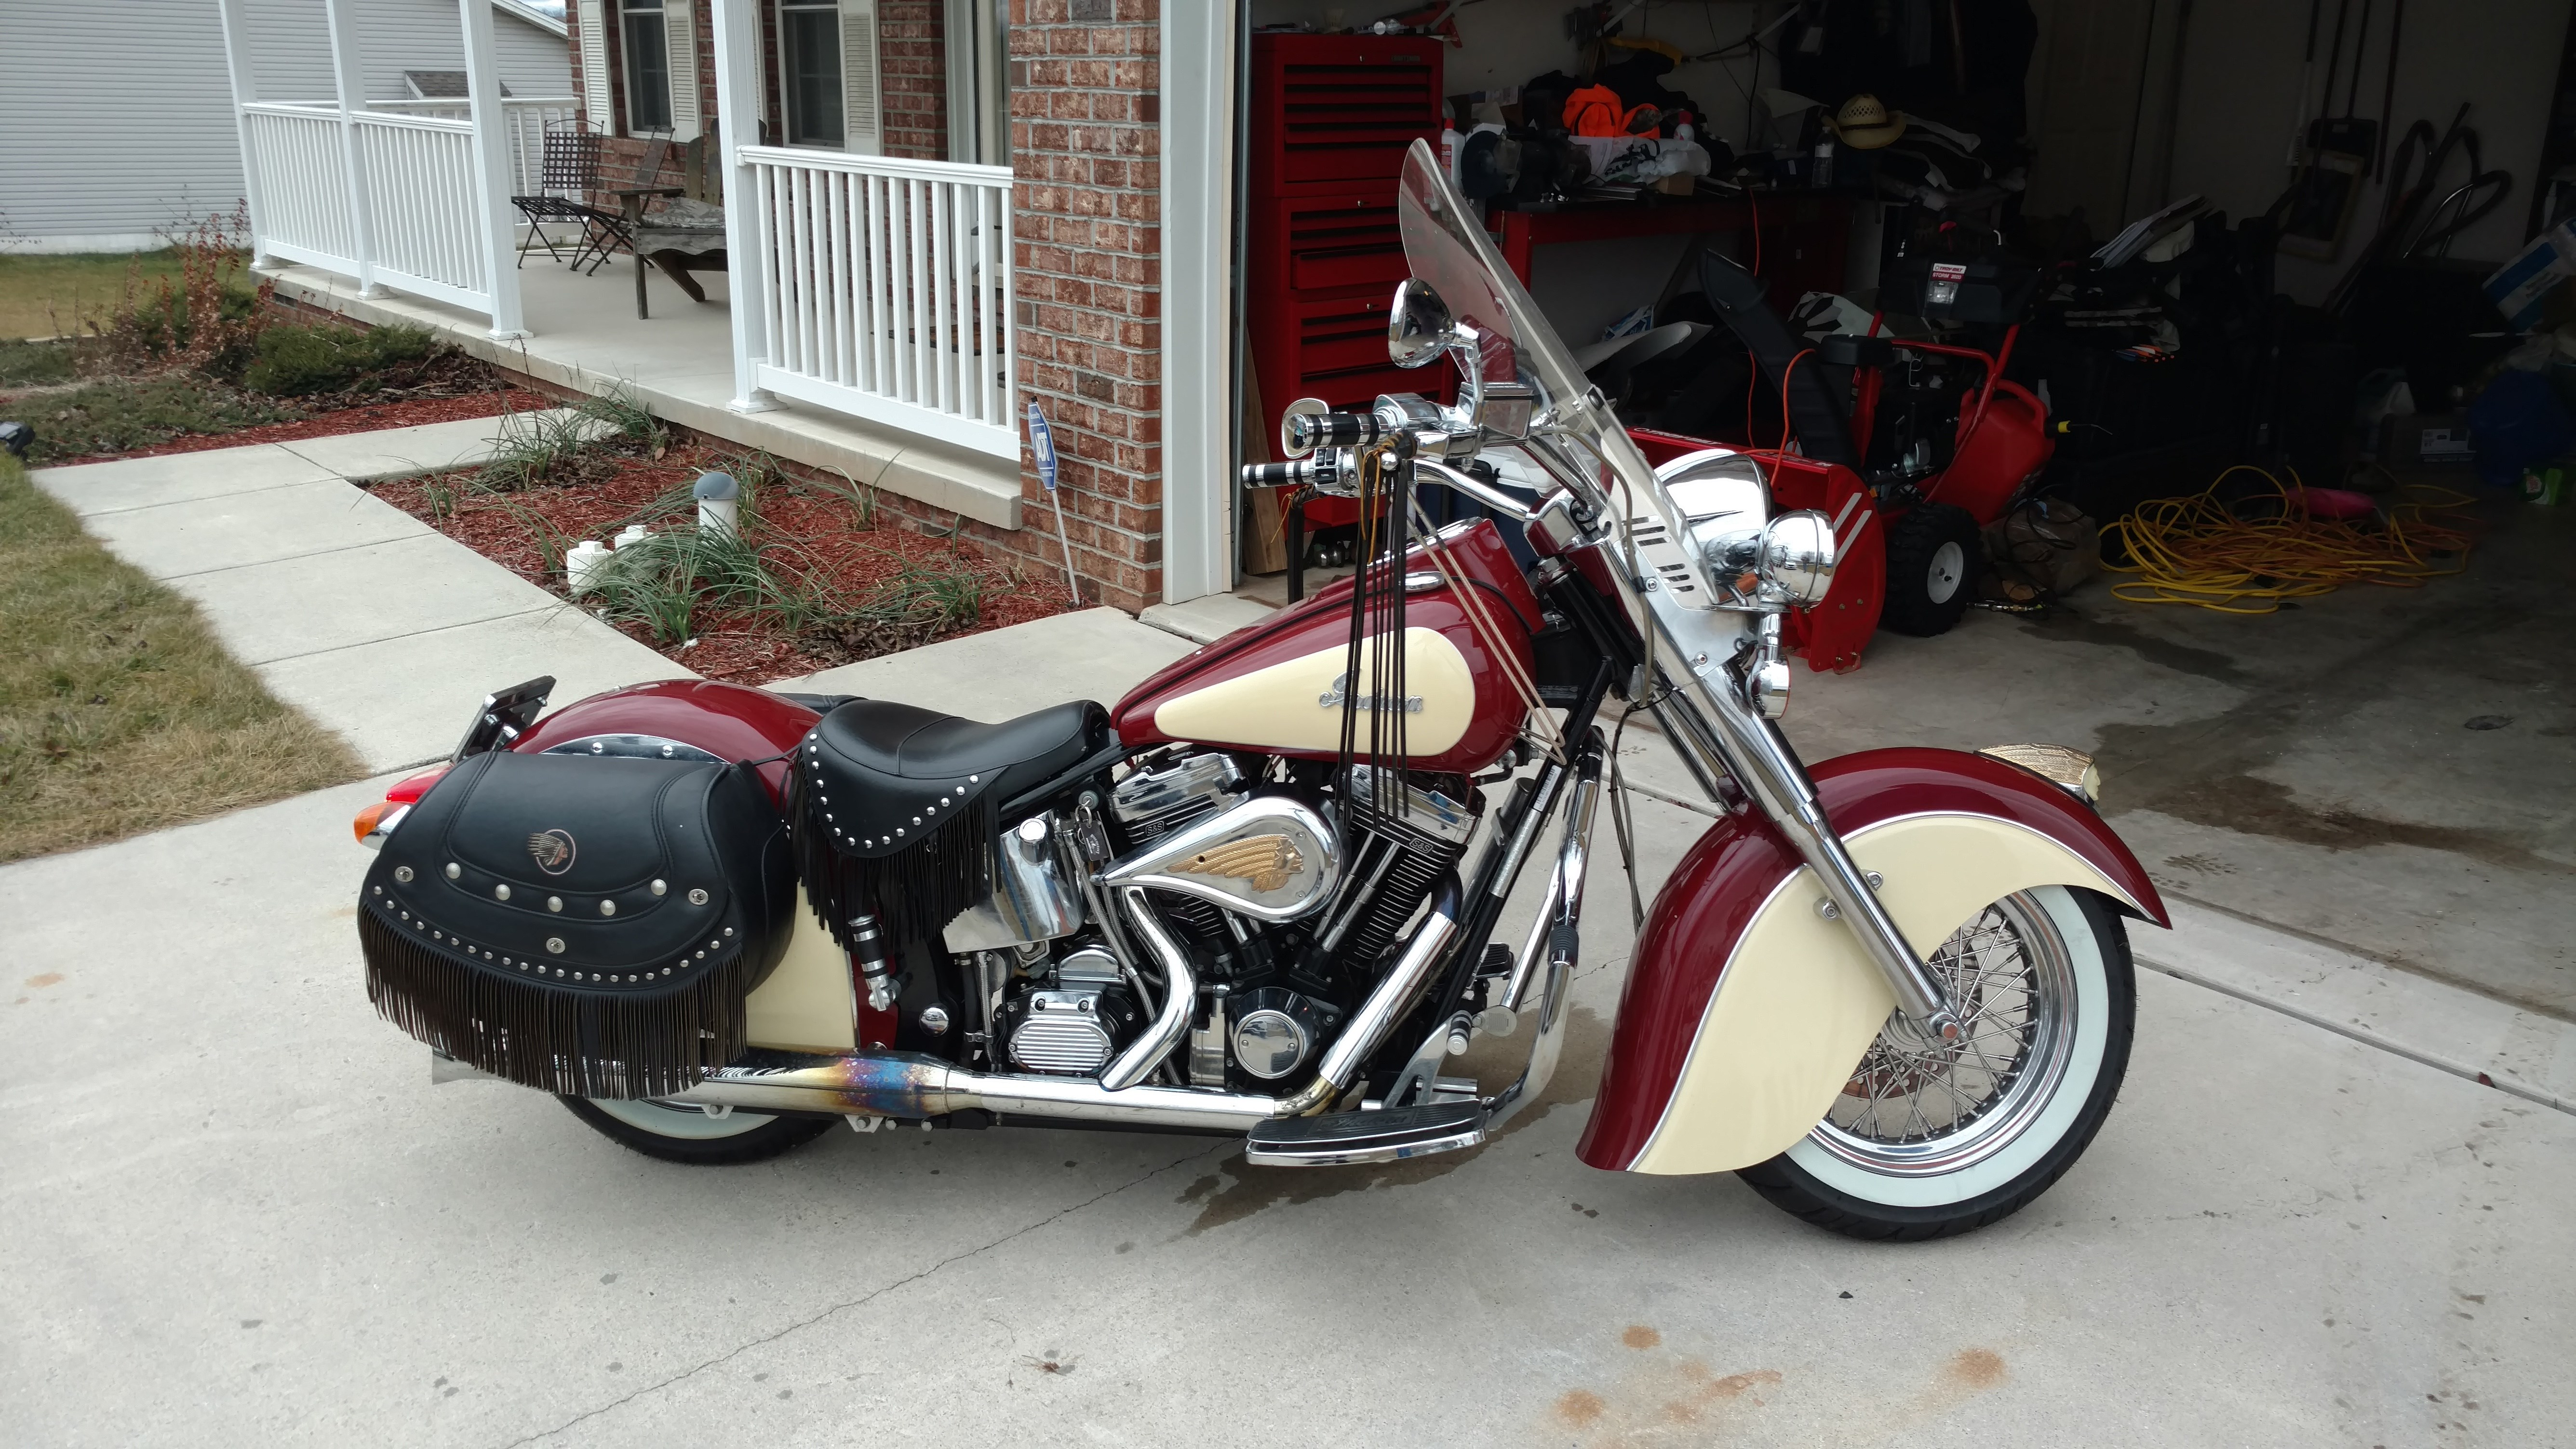 2018 Indian Scout Sixty 60 motorcycle Thunderball Black